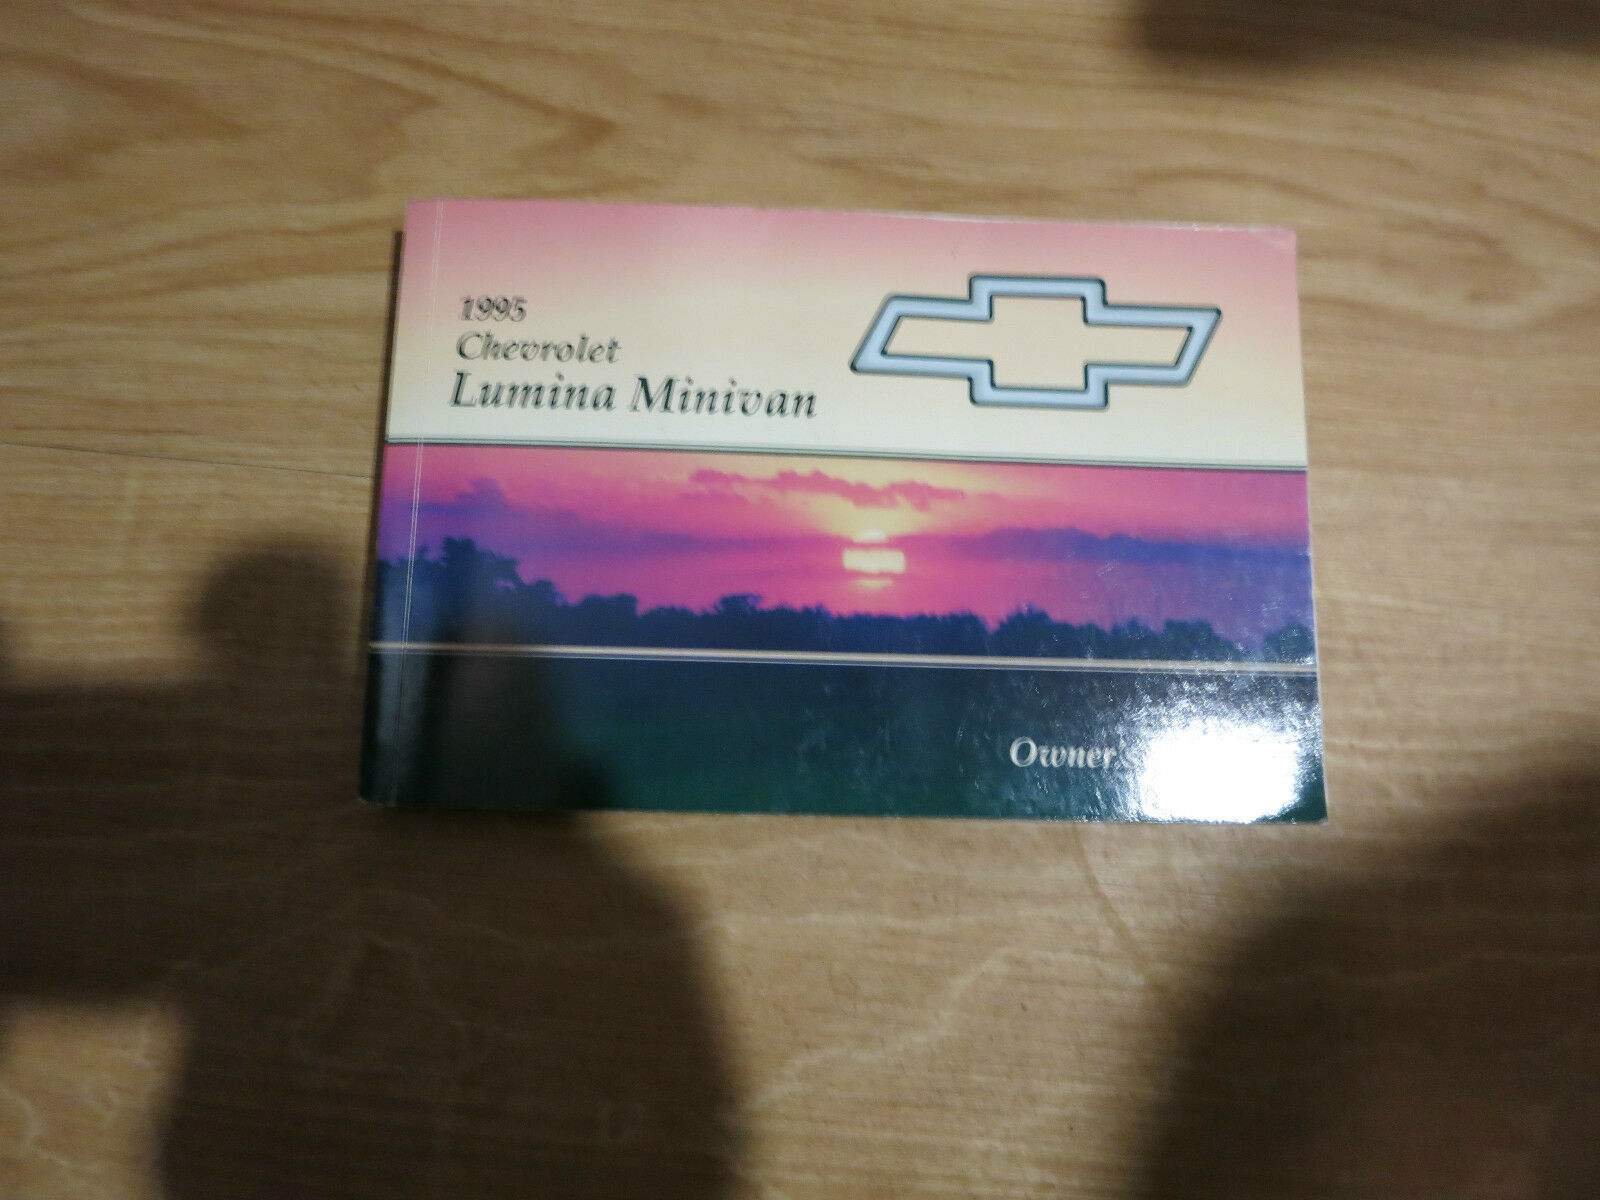 1995 chevy chevrolet LUMINA MINIVAN owners manual 1 of 1Only 1 available ...